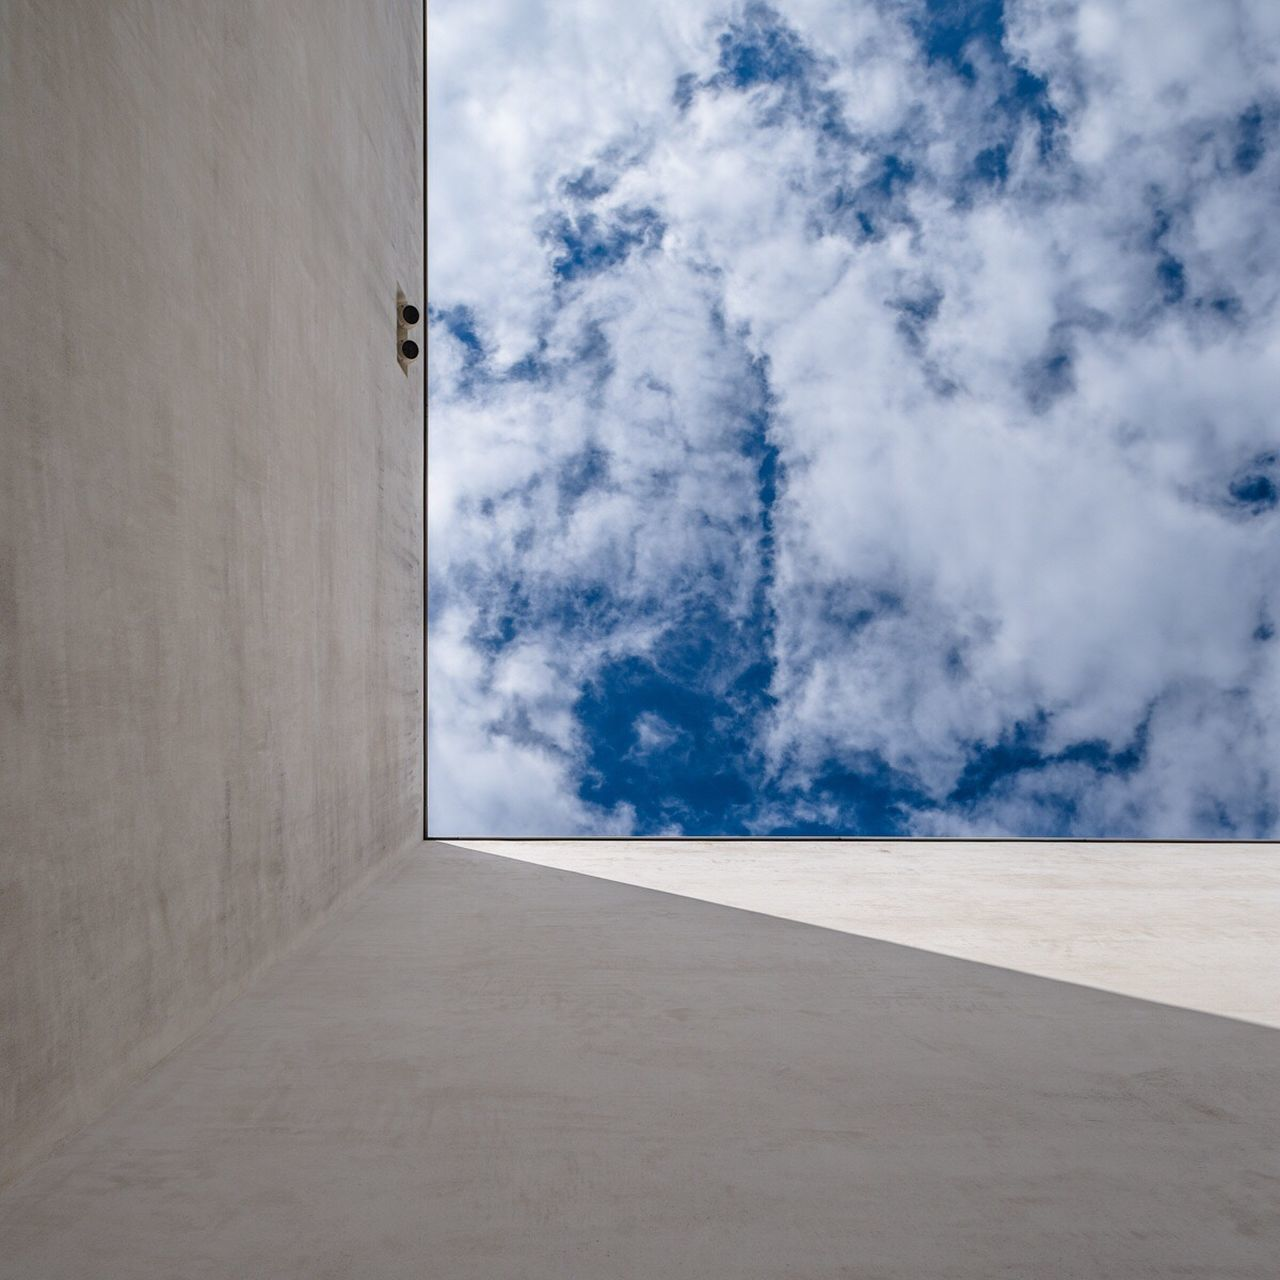 day, architecture, no people, cloud - sky, built structure, sky, outdoors, building exterior, nature